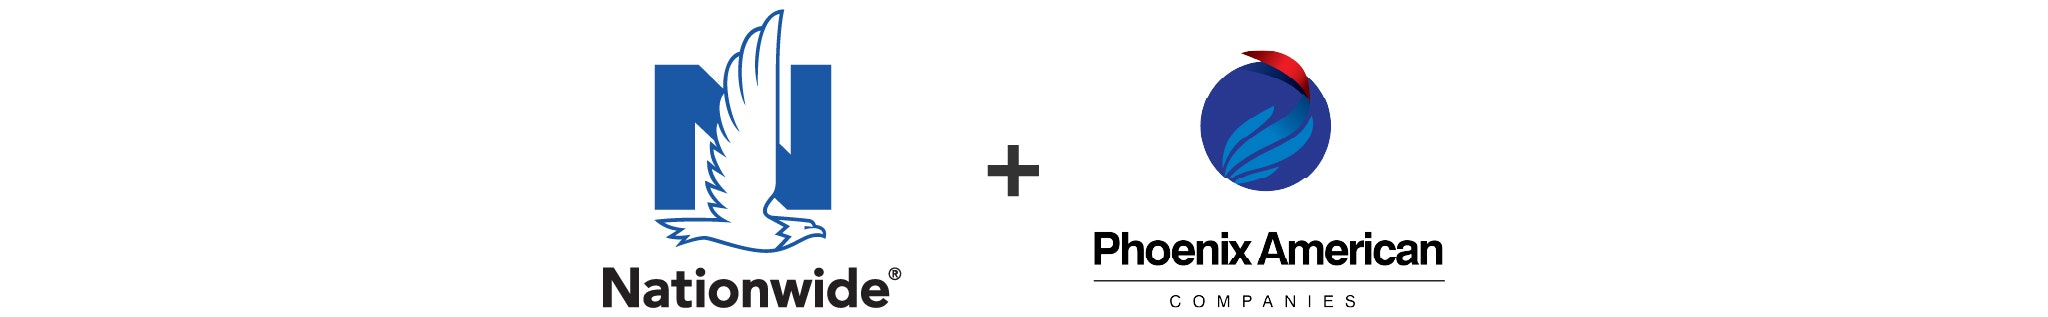 Nationwide-Phoenix_Logos-Stacked-x2-Thin